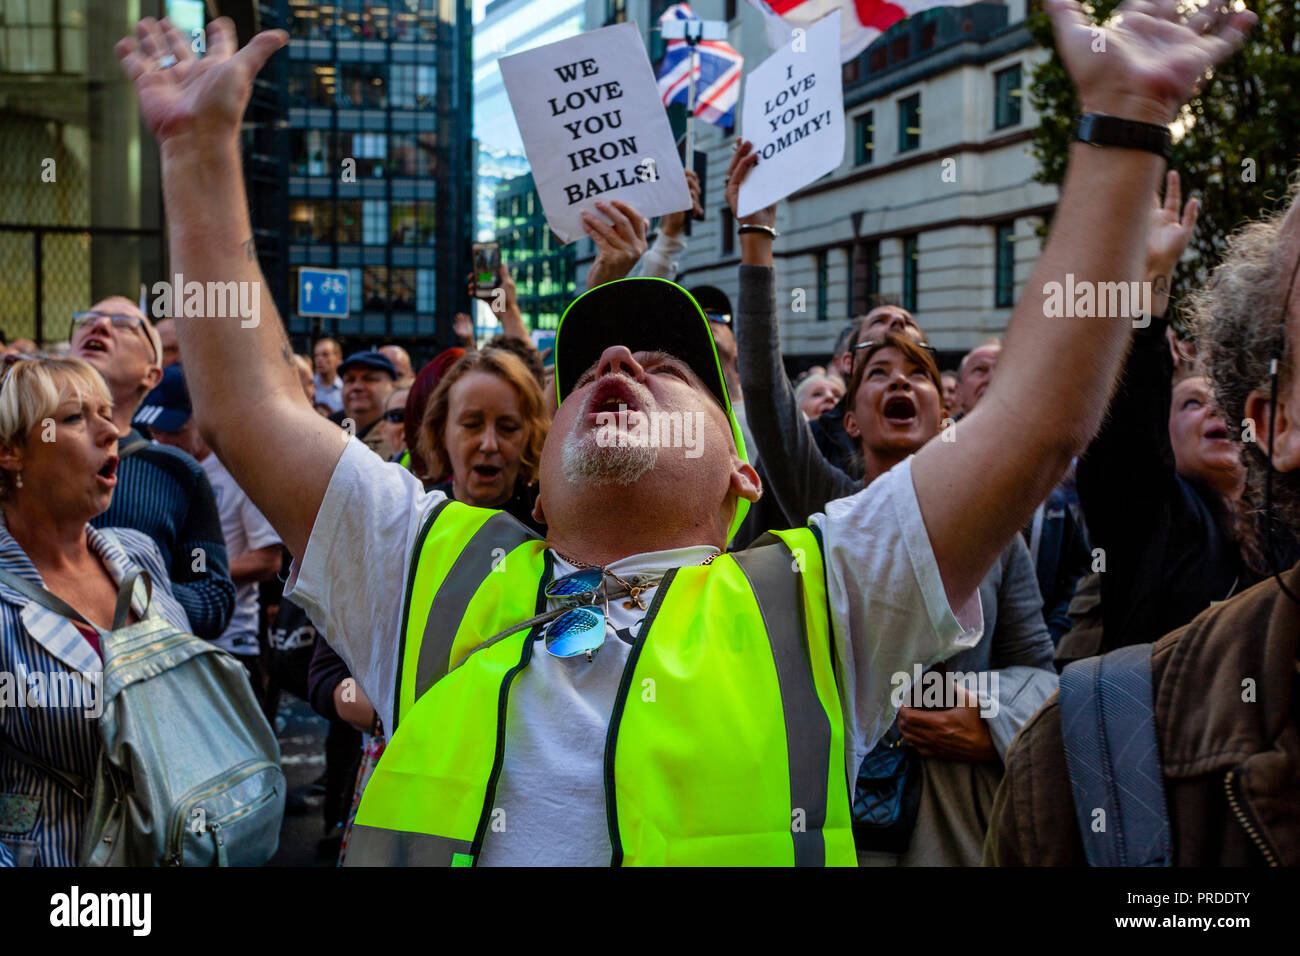 Supporters Of The Right Wing Activist Tommy Robinson Show Support Outside The Old Bailey As He Answers A Charge For Contempt Of Court, London, UK - Stock Image